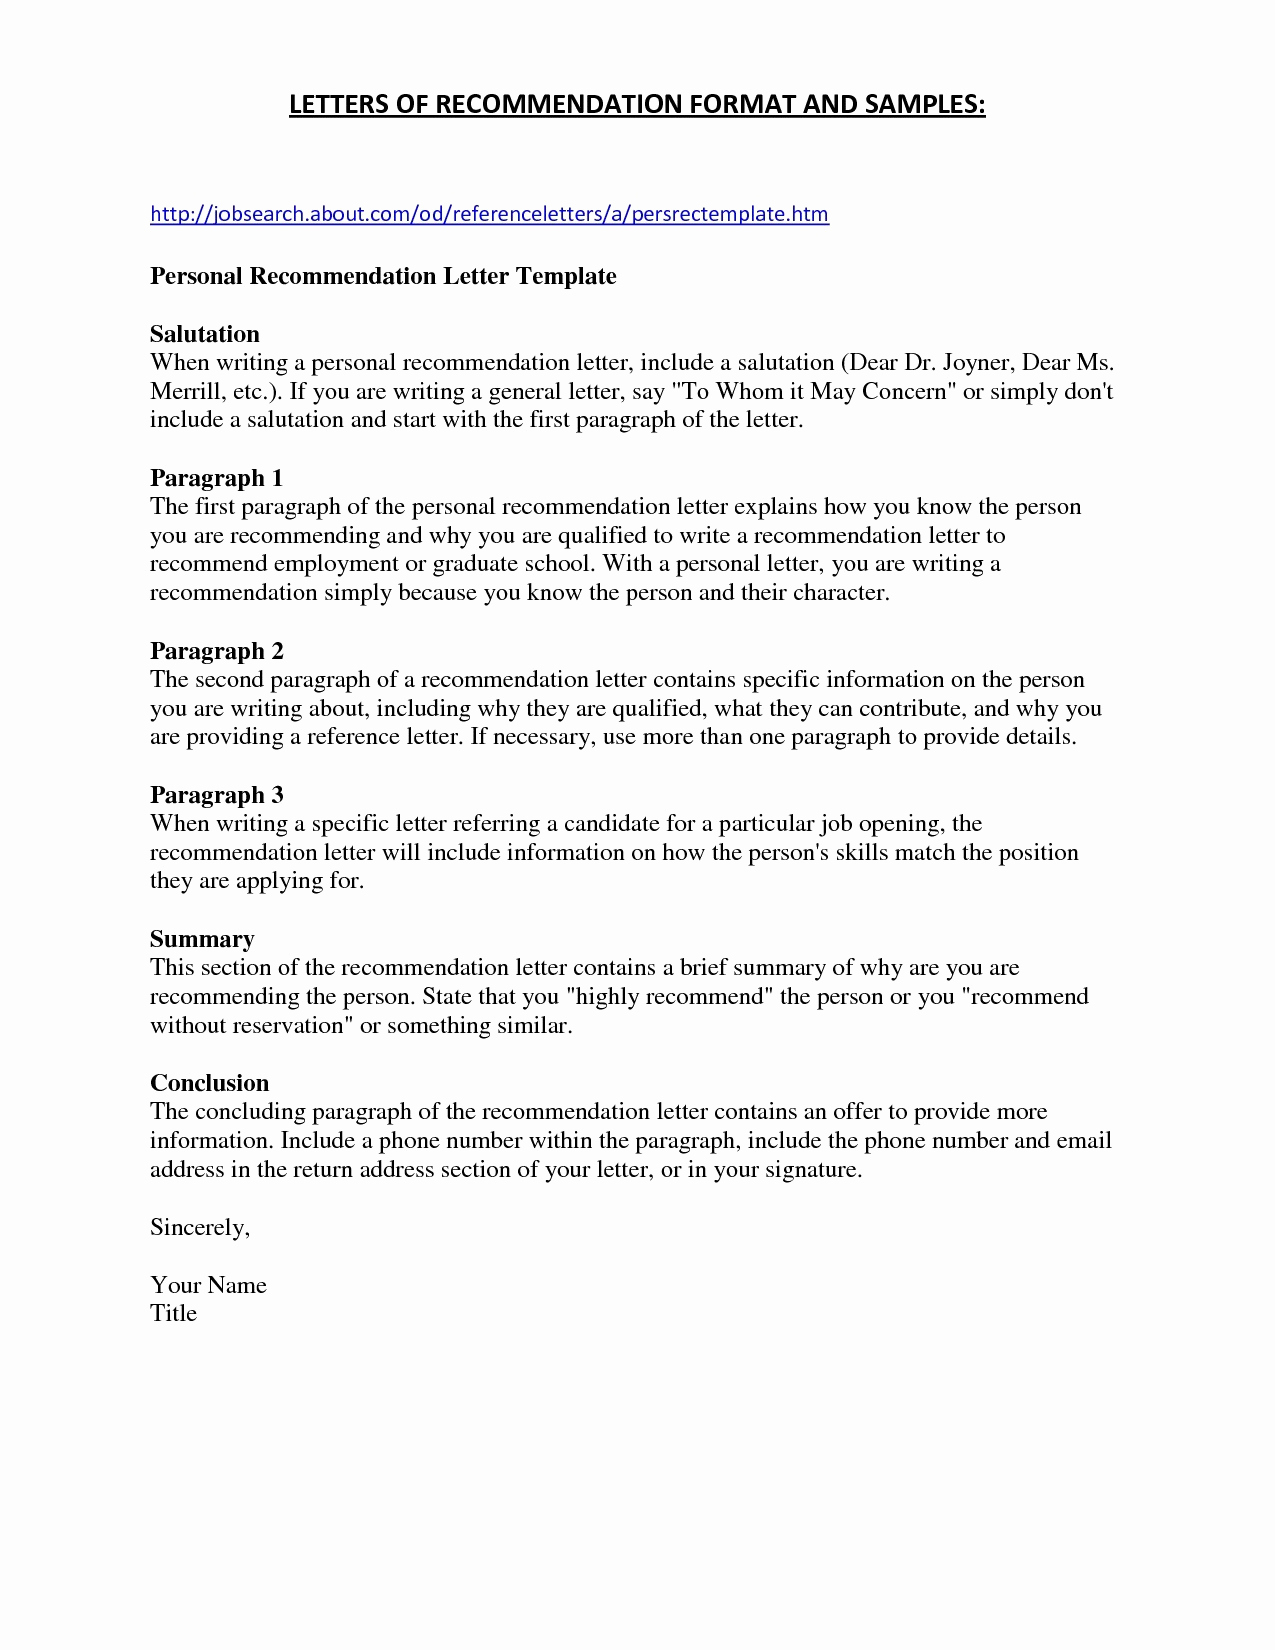 School Recommendation Letter Template - Decision Making Worksheets for Middle School Students 45 New Cover